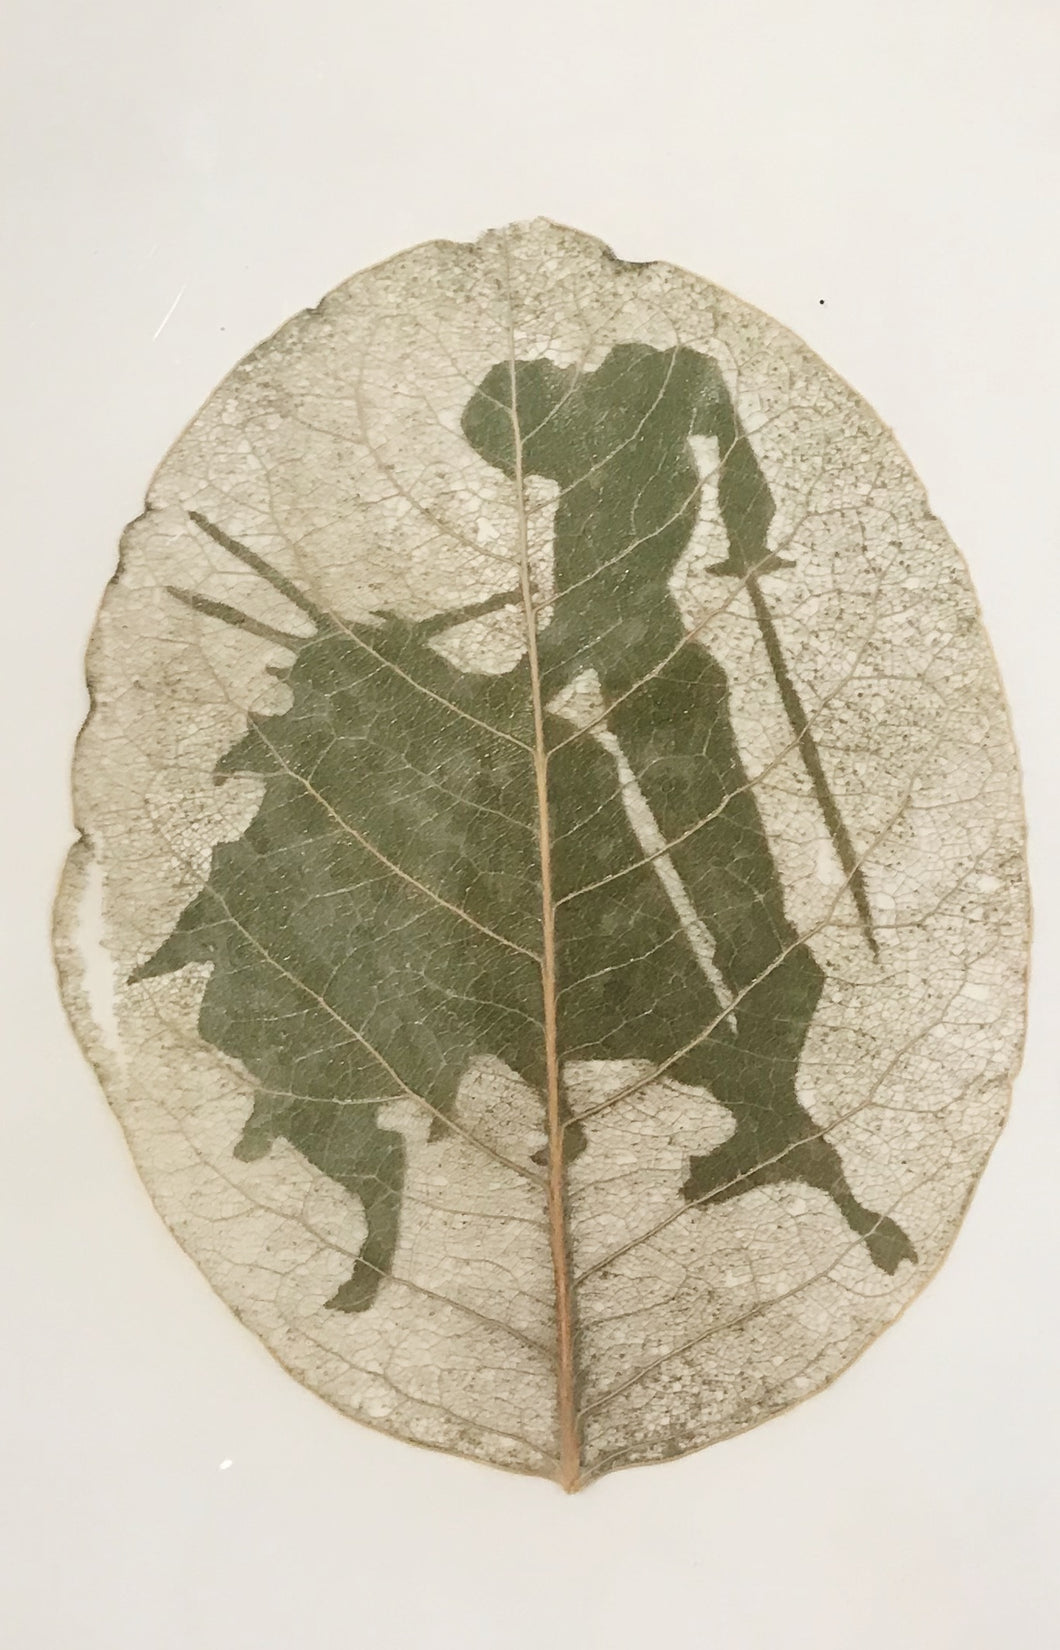 Carved Leaf by Artist Jesús Leal Lambusino